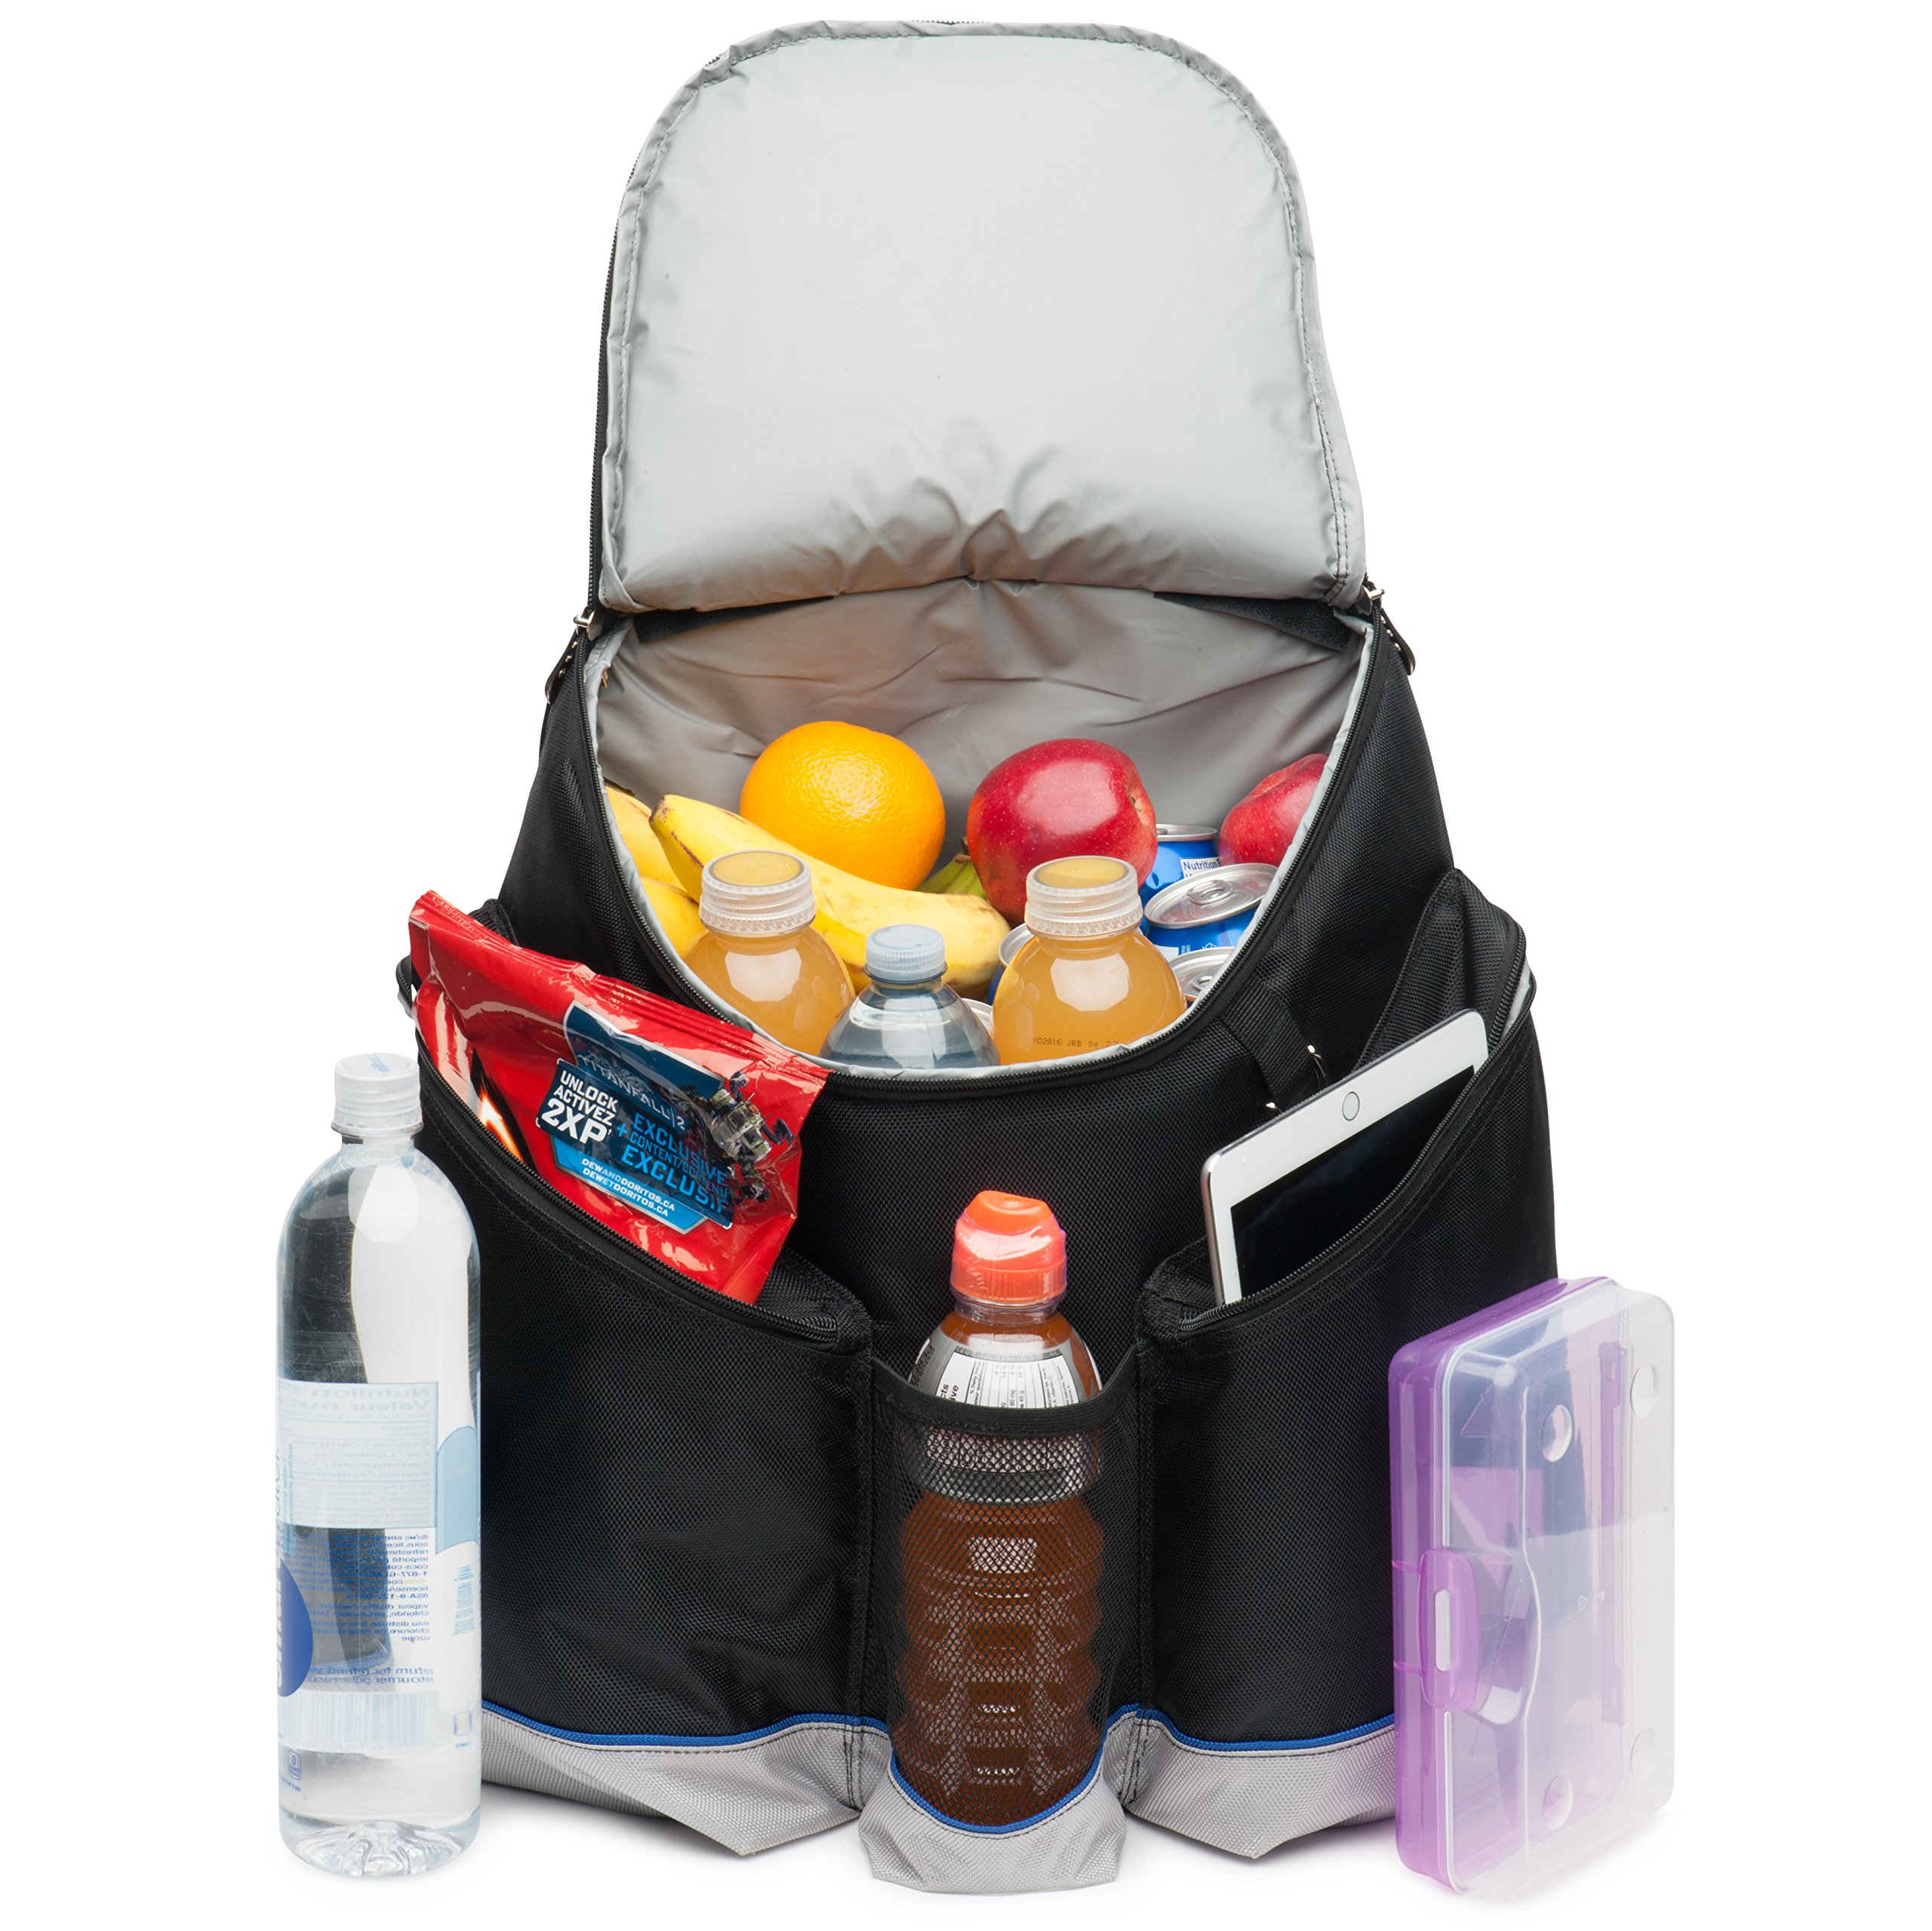 Very Large Cooler Backpack. Heavy Duty 1680D Fabric, High Density Thick Foam Insulation, 2 Heat Sealed Removable Thick Peva Liners, Large Padded Pockets, Strong Zippers. Hicking Camping Travel Beach